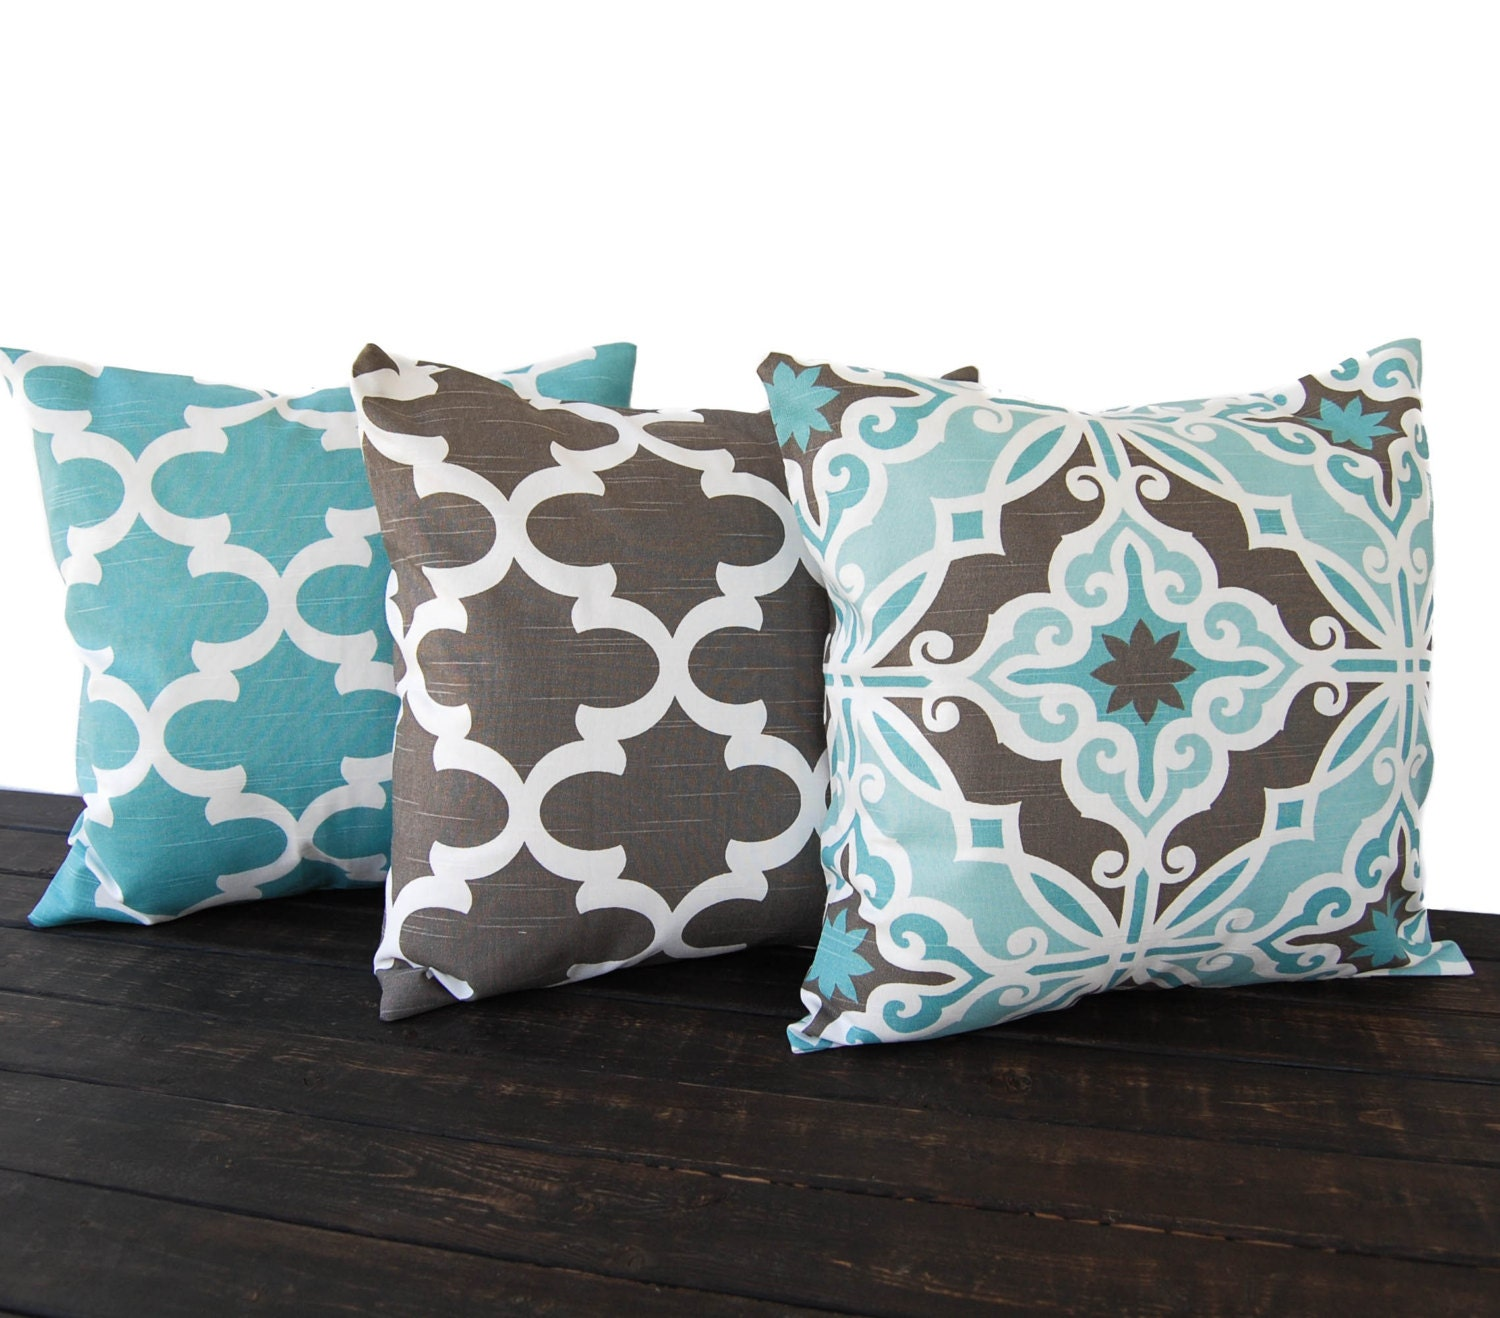 Throw Pillow Covers Set : Throw pillow covers cushion covers gray brown light blue white